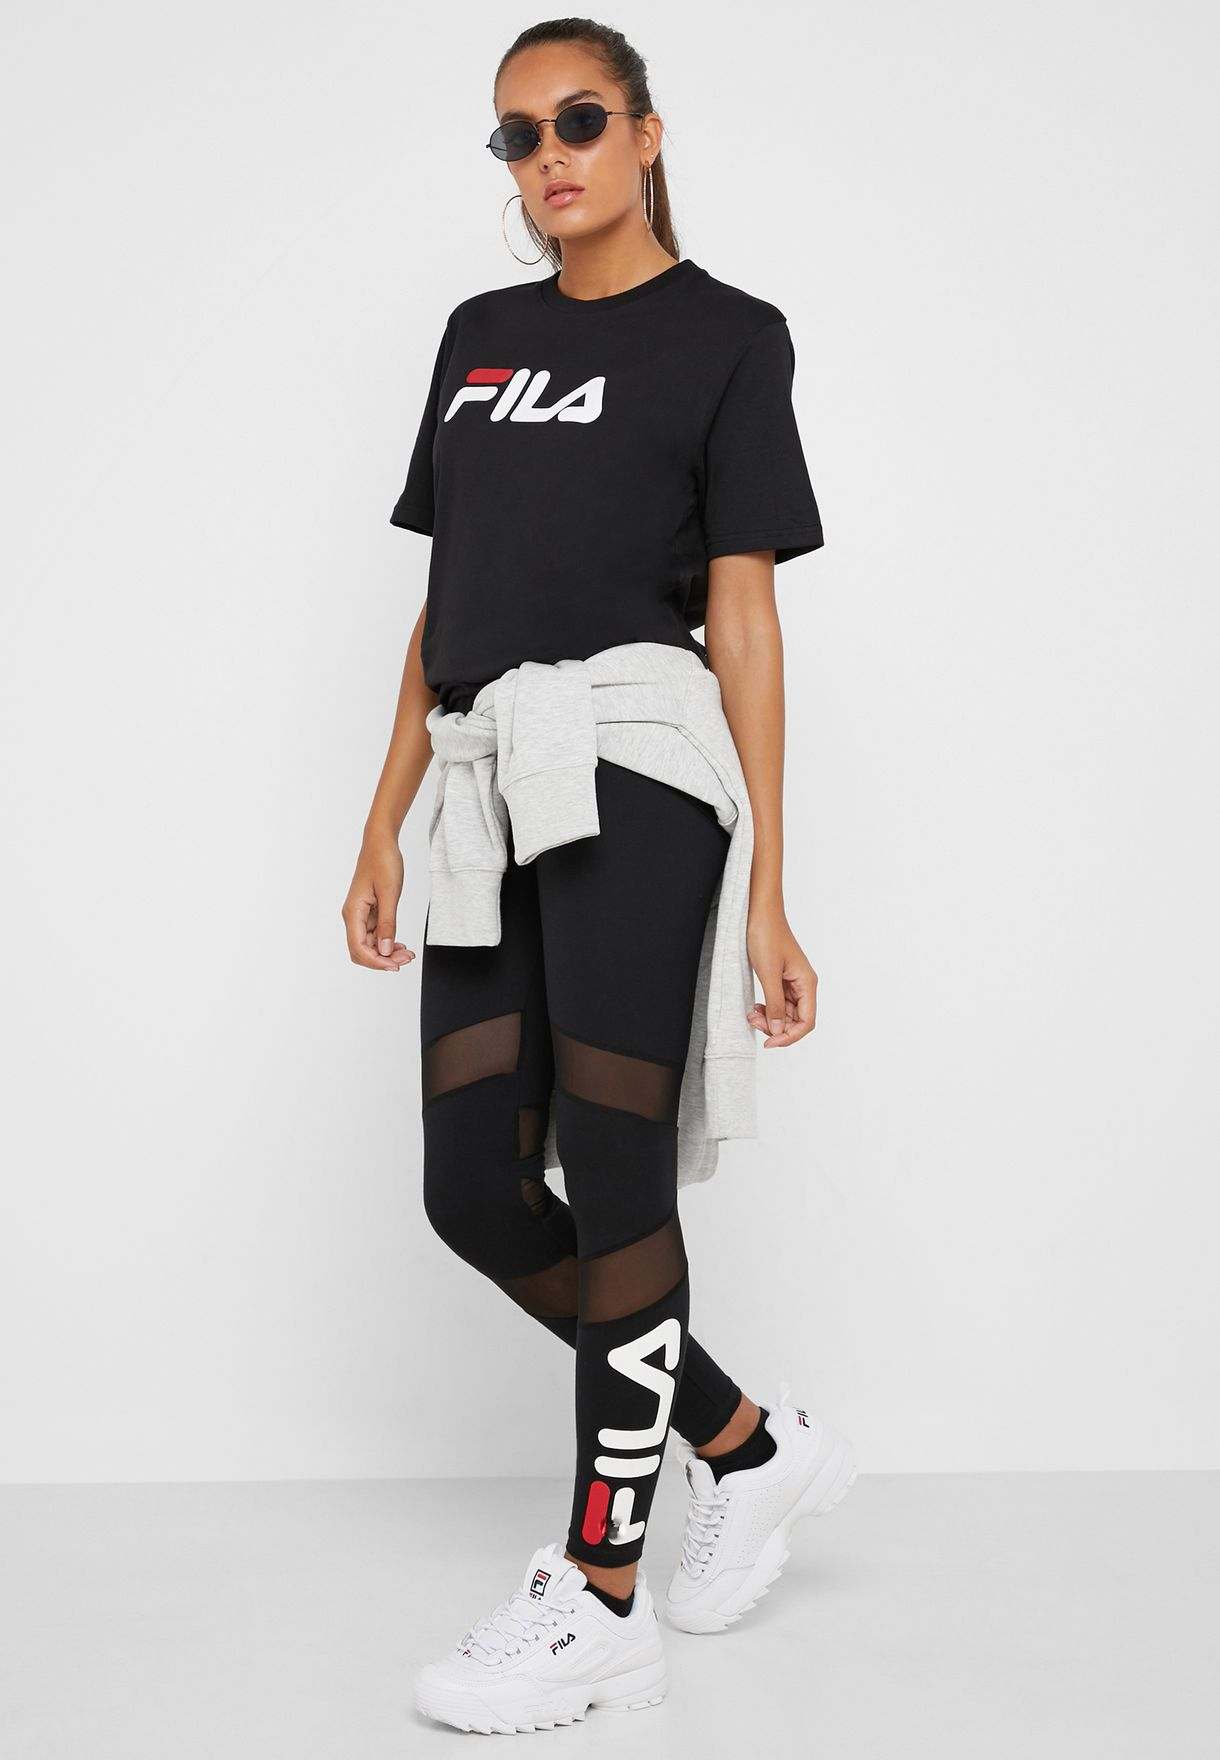 18f1bf10a43 Shop Fila black Amara Legging LW181S58-001 for Women in Saudi ...